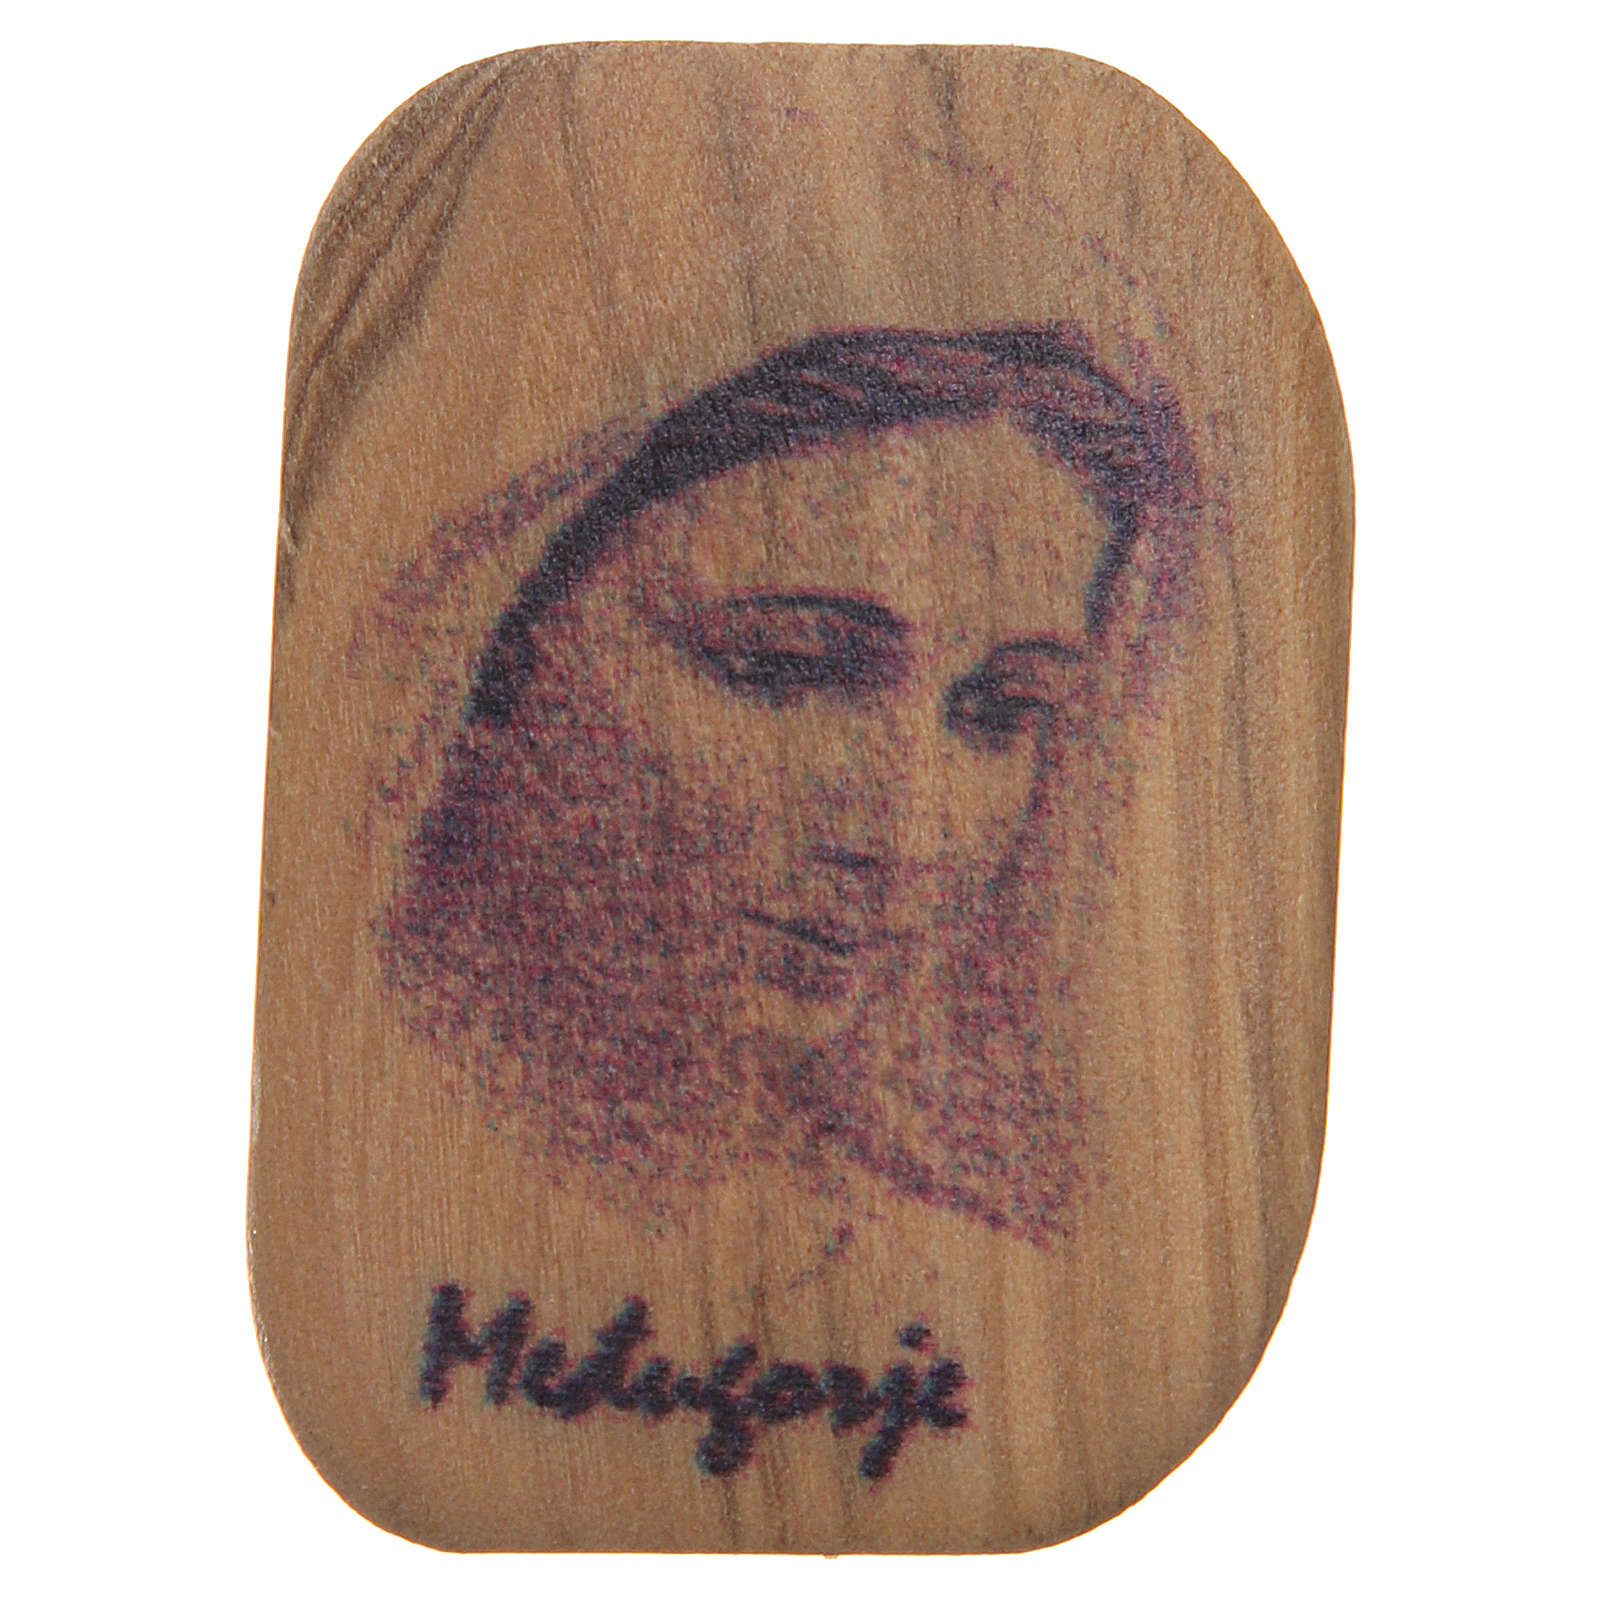 Magnet olive wood Our Lady of Medjugorje 4,2x3cm 4